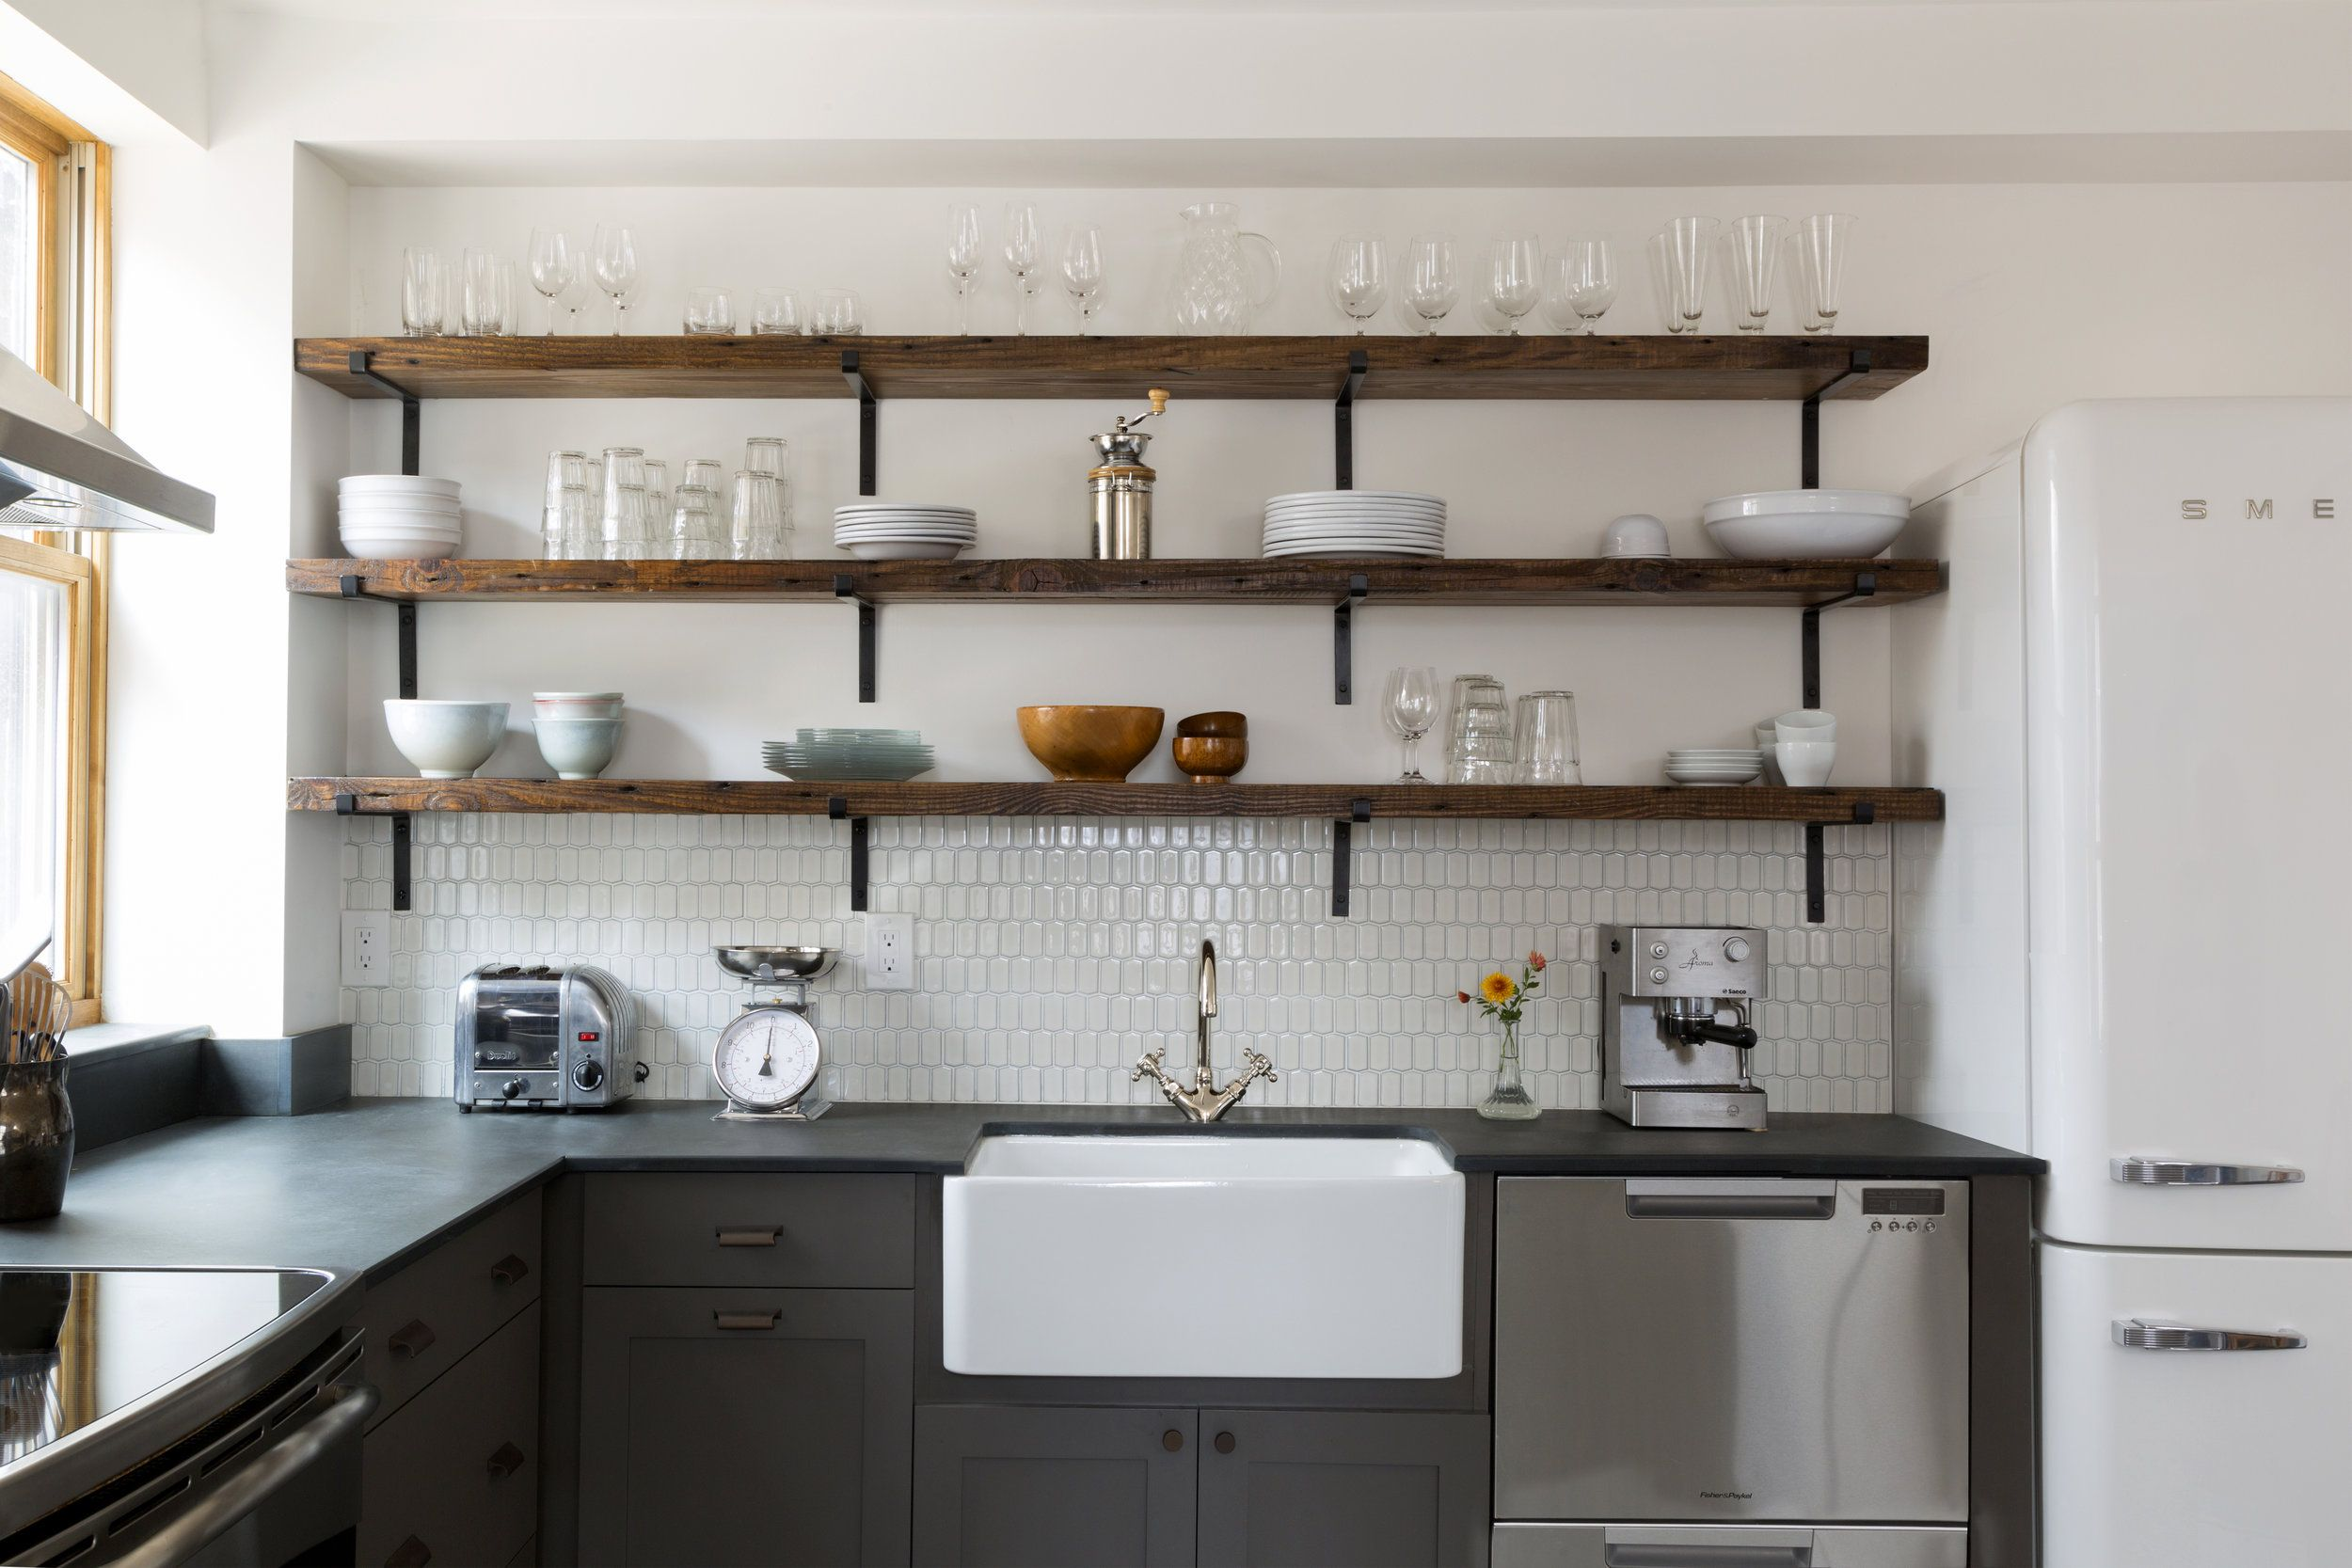 Sweet Open Shelves And Green Painted Base Cabinets - Meg